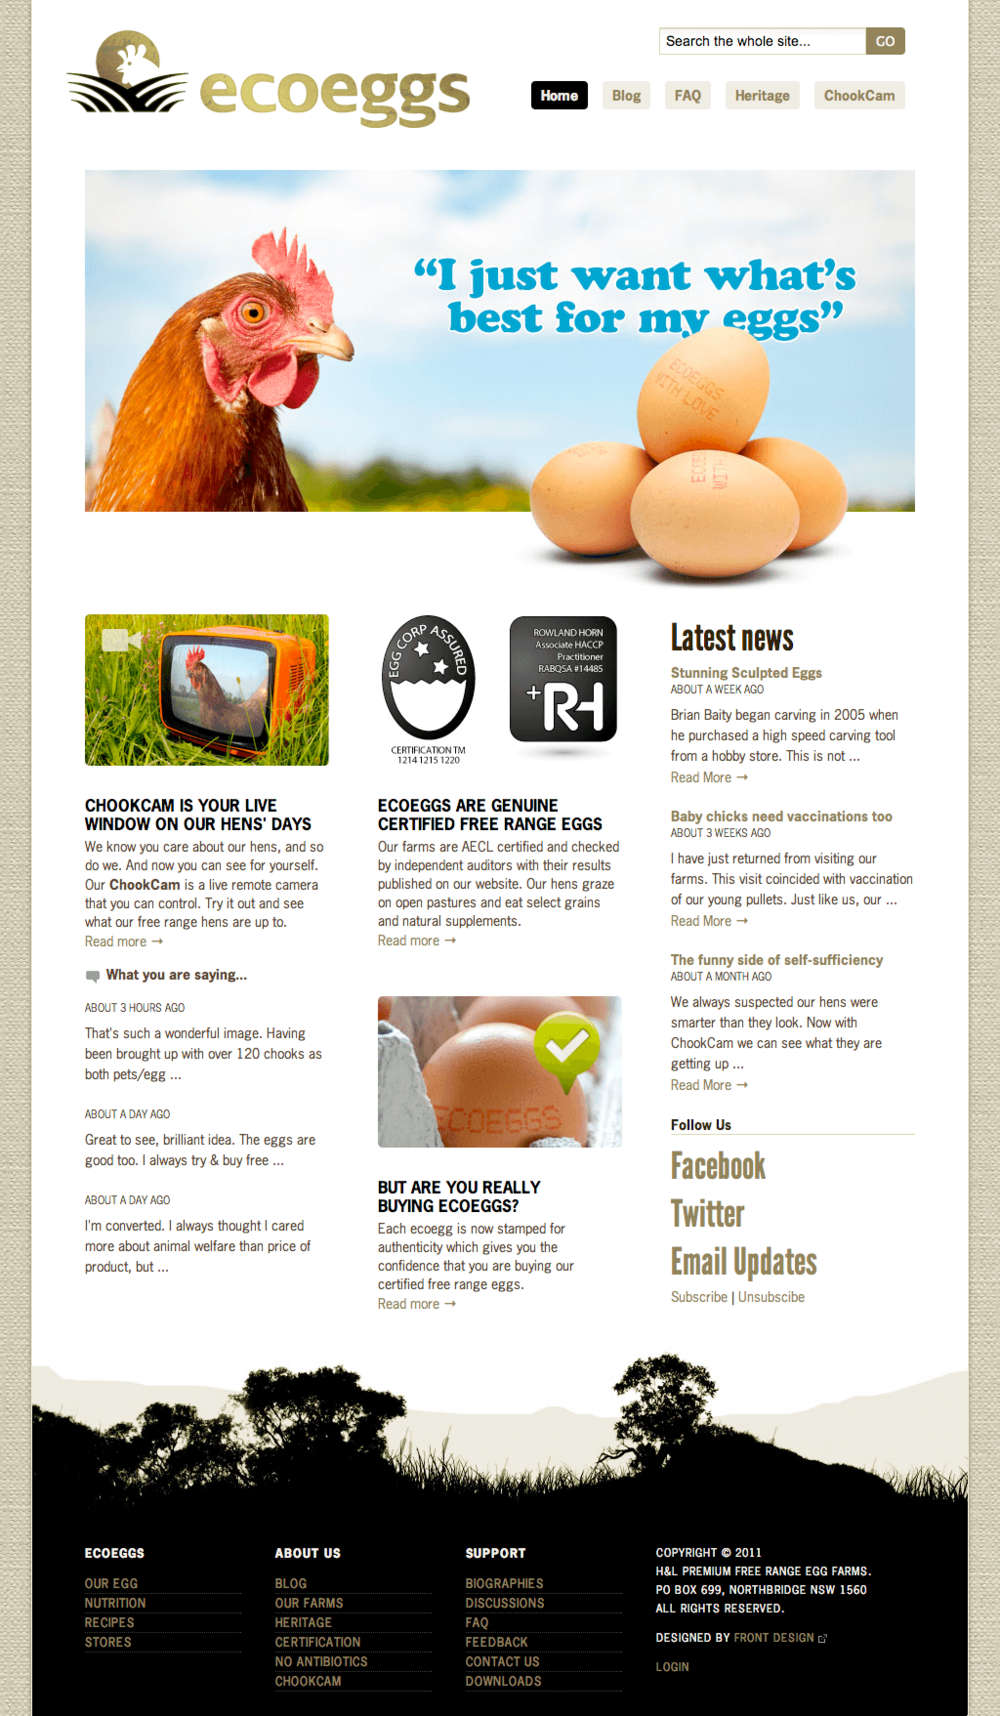 FREF-001-24184-ecoeggs_website-index-full-CS.jpg